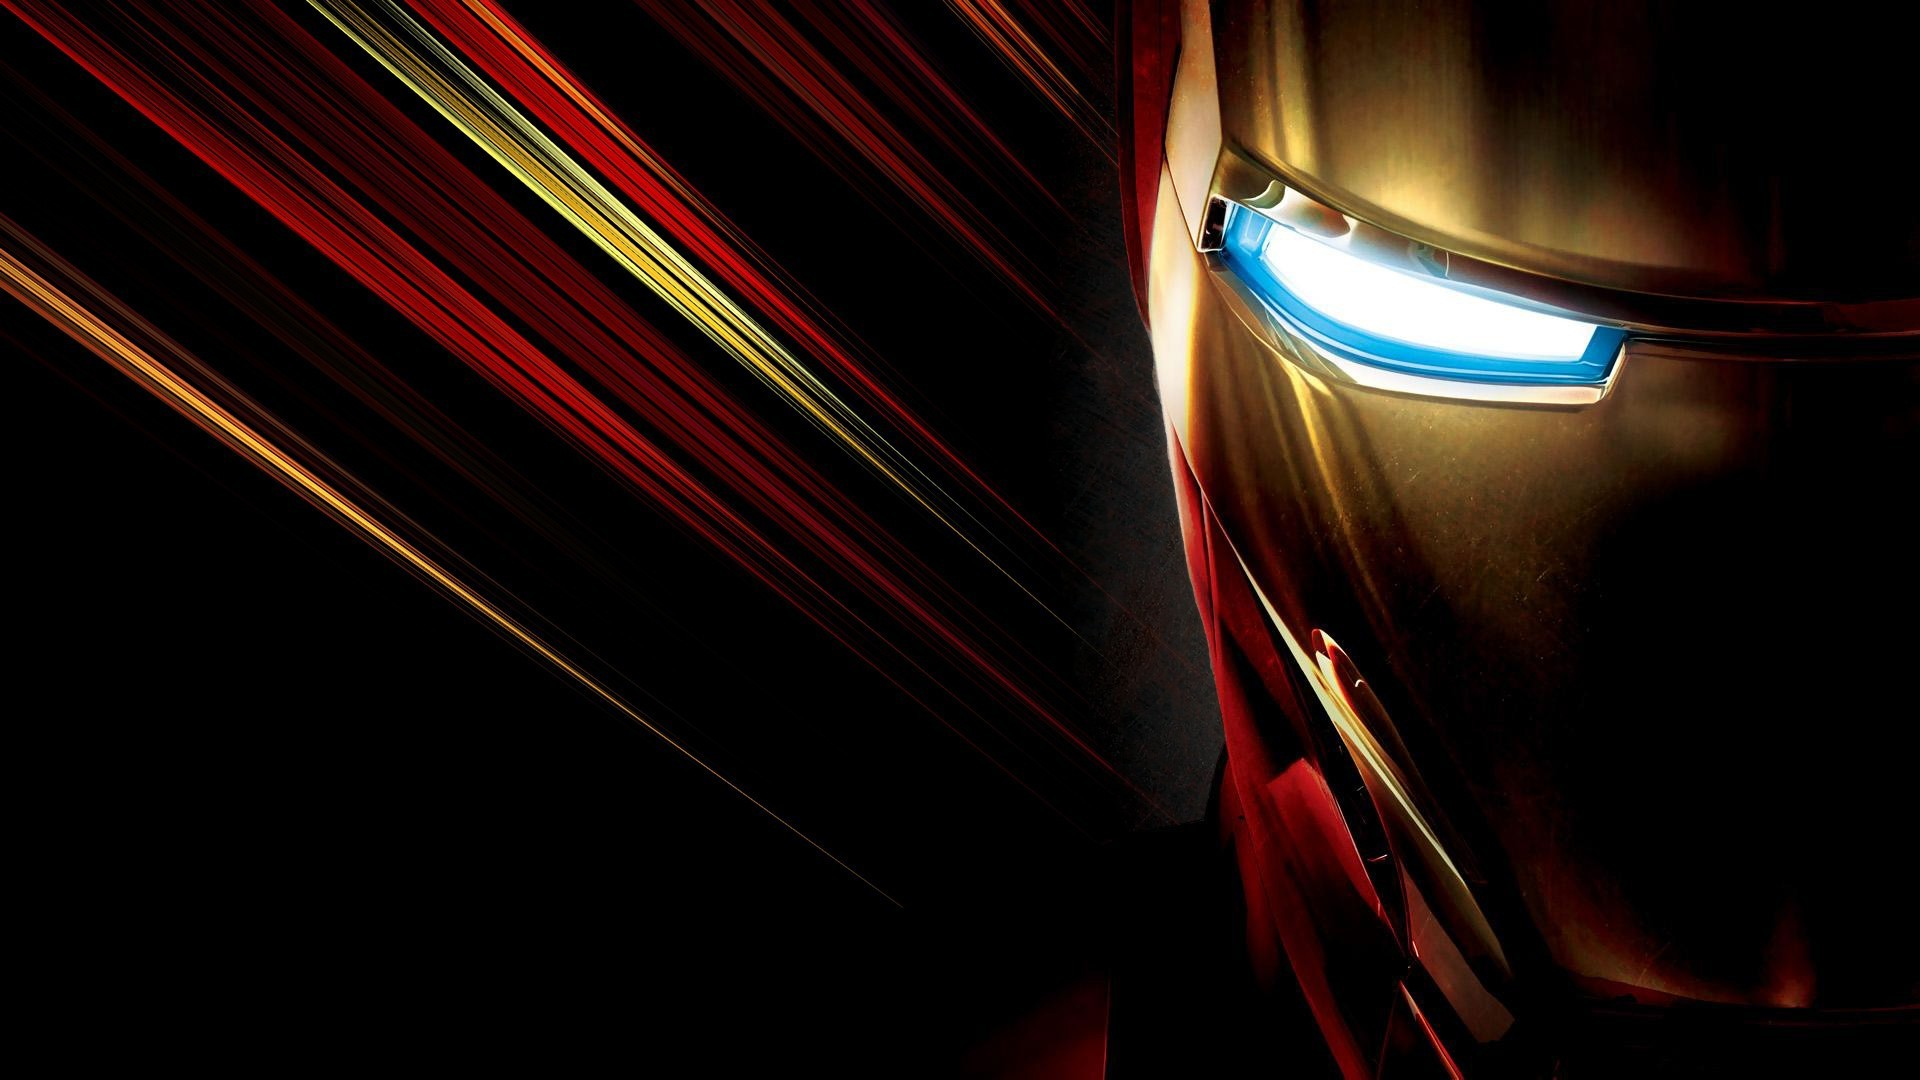 1920x1080 HD Wallpapers Of Iron Man Group 1920×1080 Iron Man Wallpaper Hd (39  Wallpapers